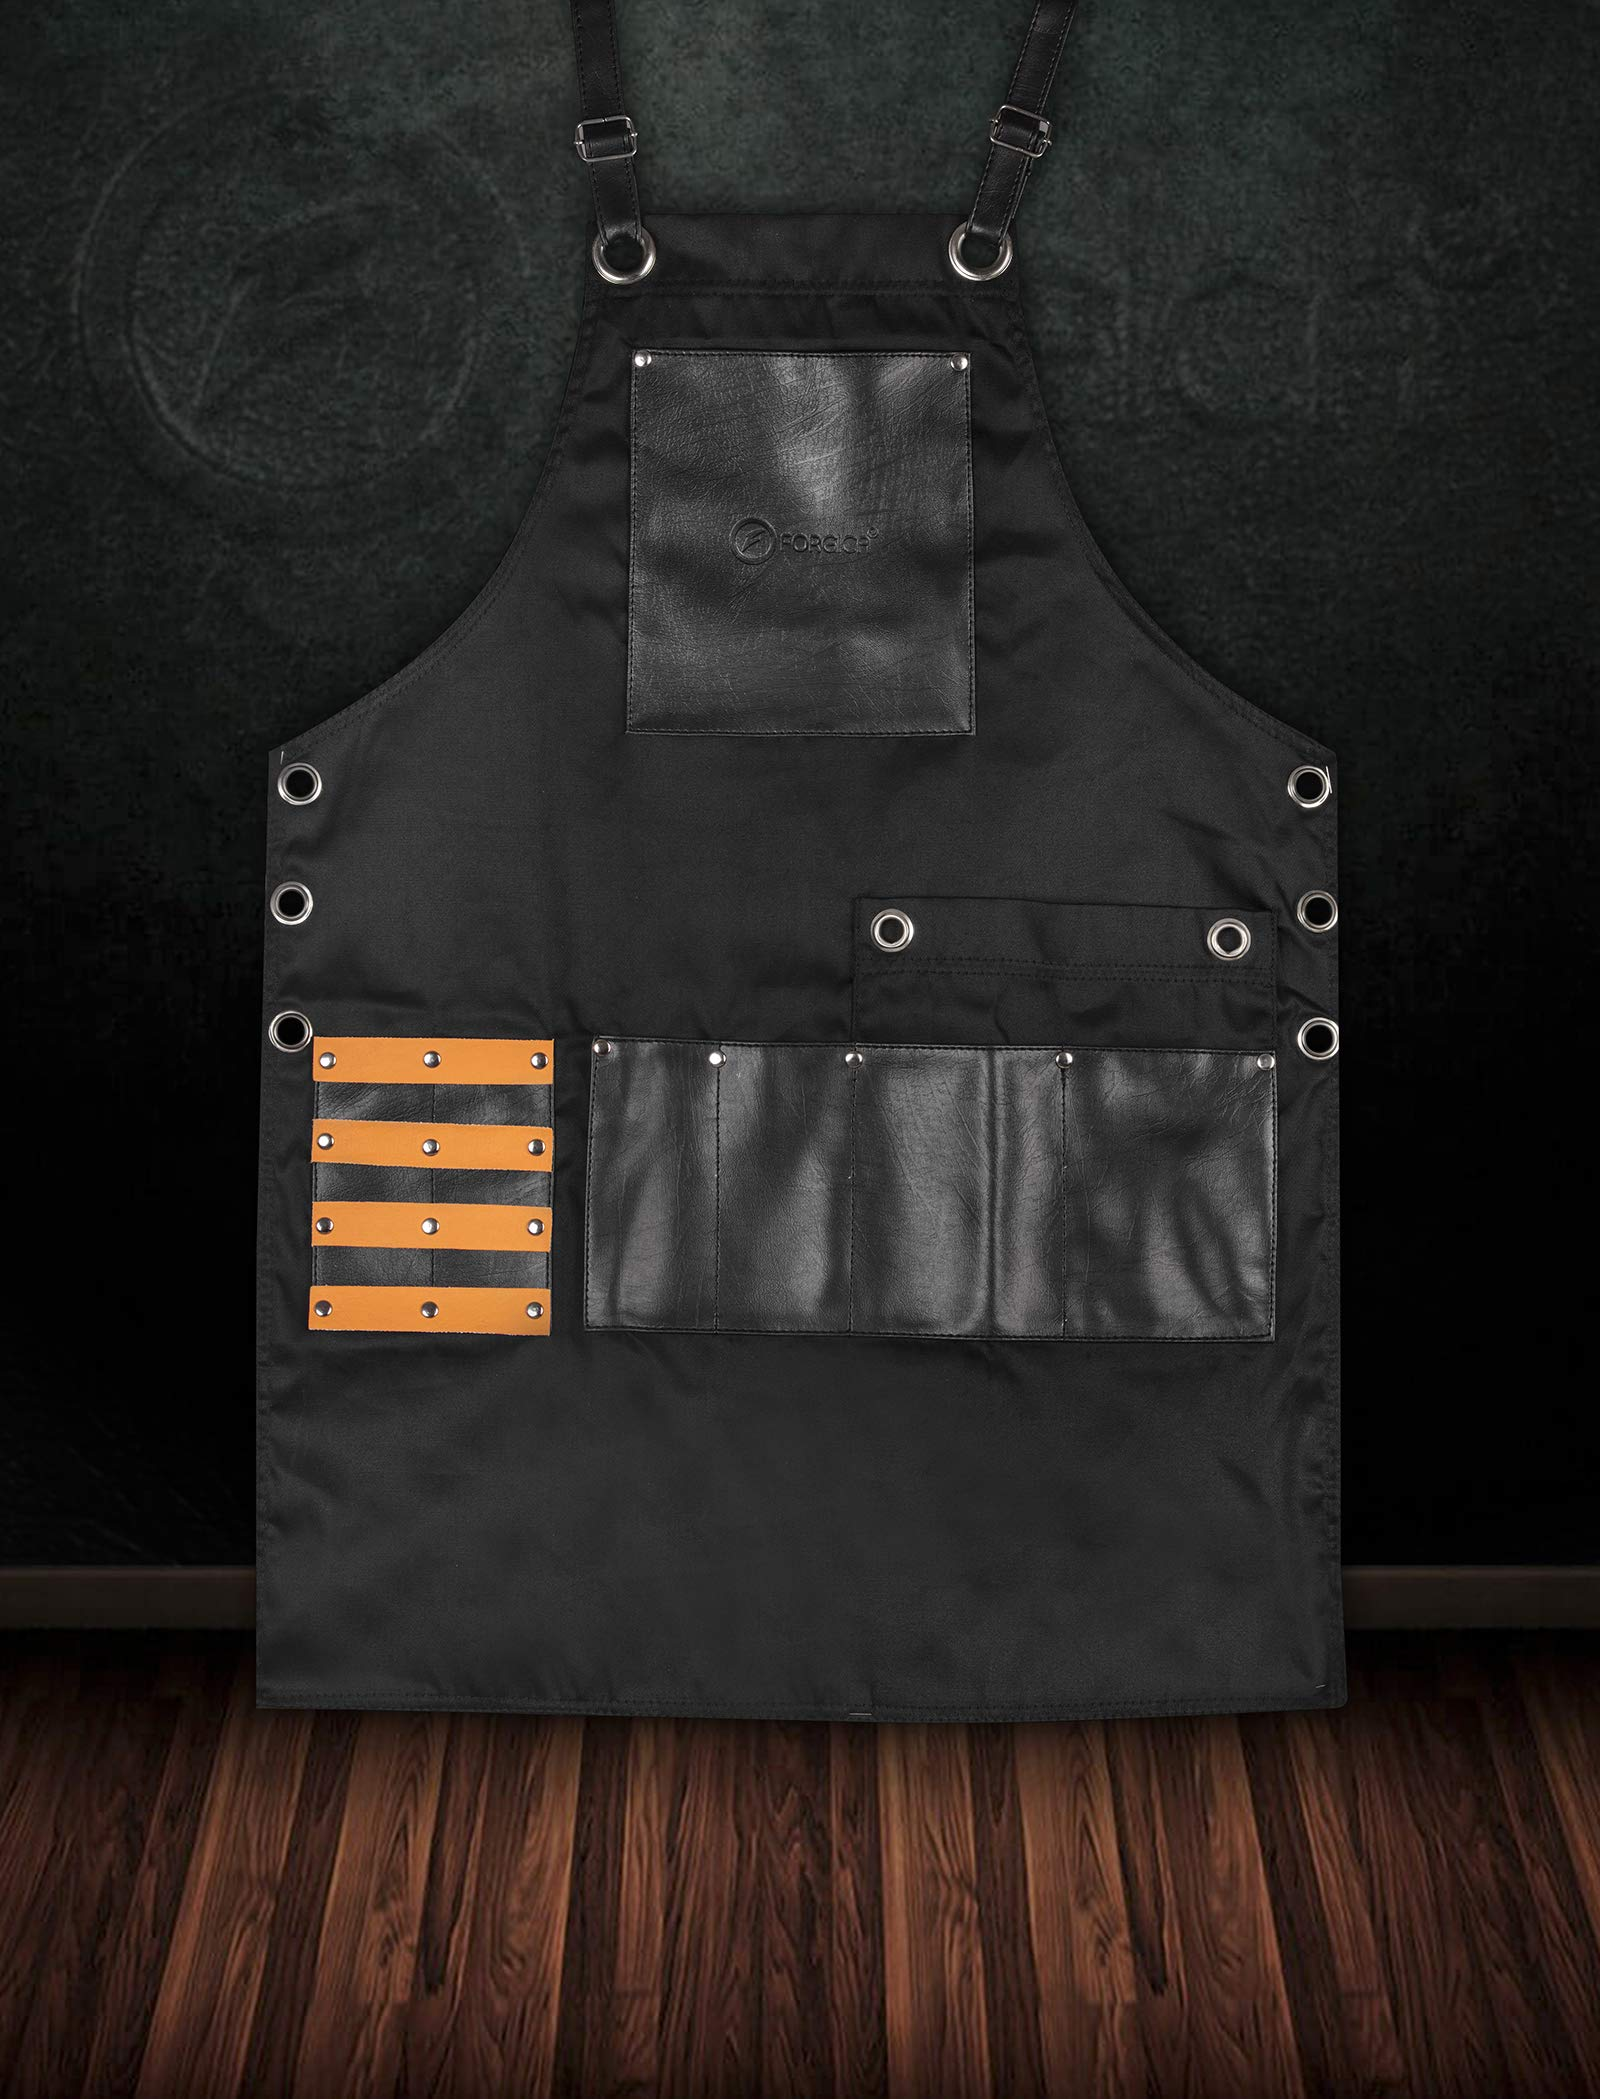 FORGICA Bib Apron Professional PU Leather Aprons for men Barber Apron for kitchen Salon Hairstylist - Multi-use, Adjustable size 8 pockets - Heavy Duty Premium Quality Aprons for Women - NY Edition by Forgica